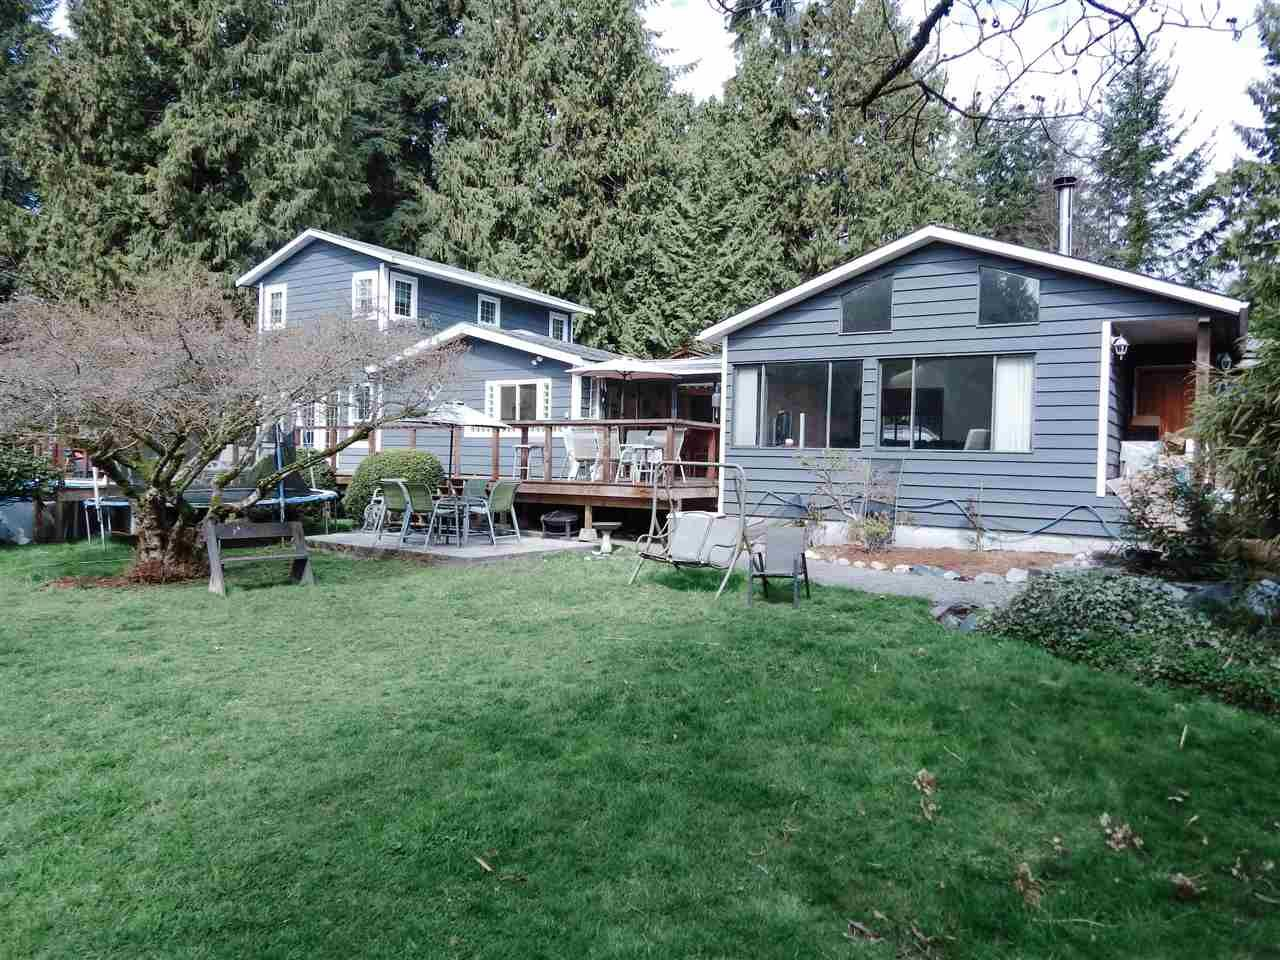 Photo 11: Photos: 1167 CHASTER Road in Gibsons: Gibsons & Area House for sale (Sunshine Coast)  : MLS®# R2449547